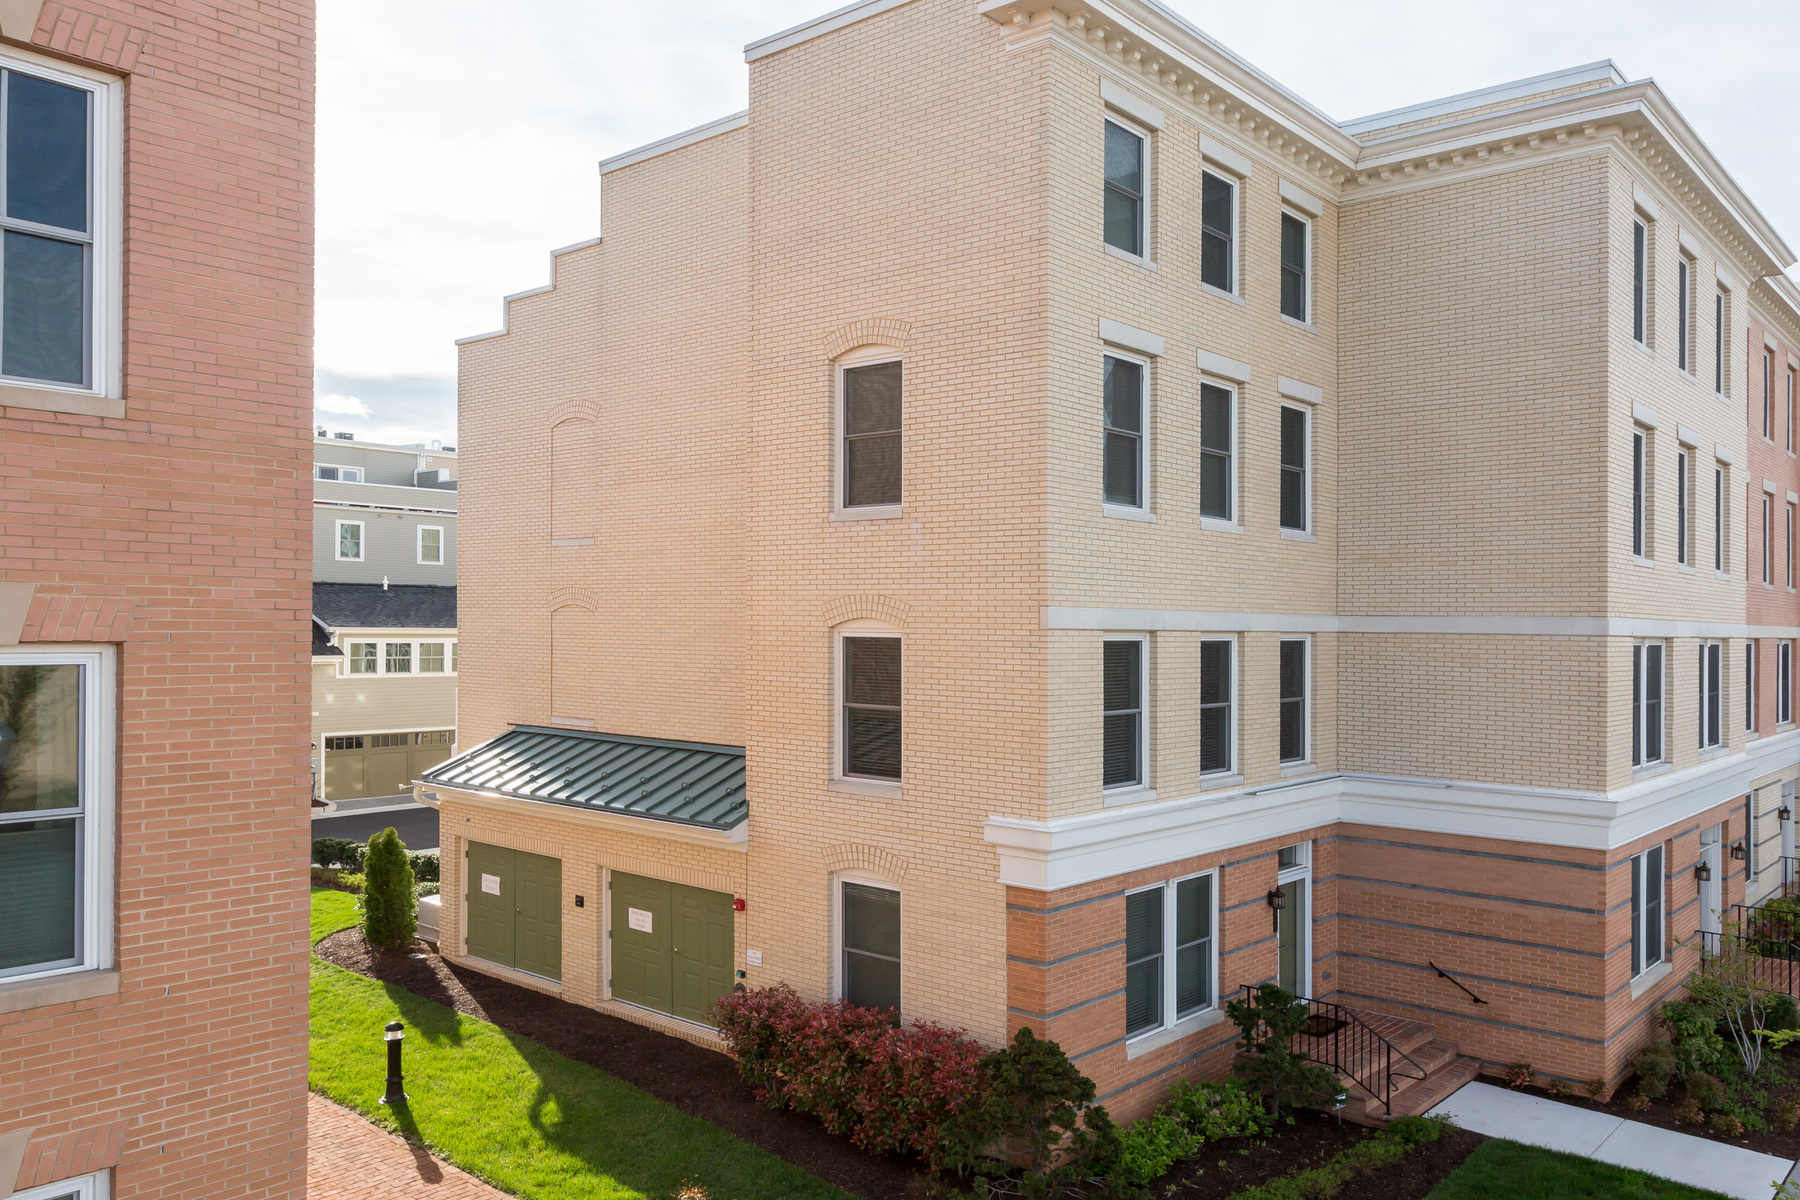 sales property at 2217 Jefferson Davis Highway, Alexandria